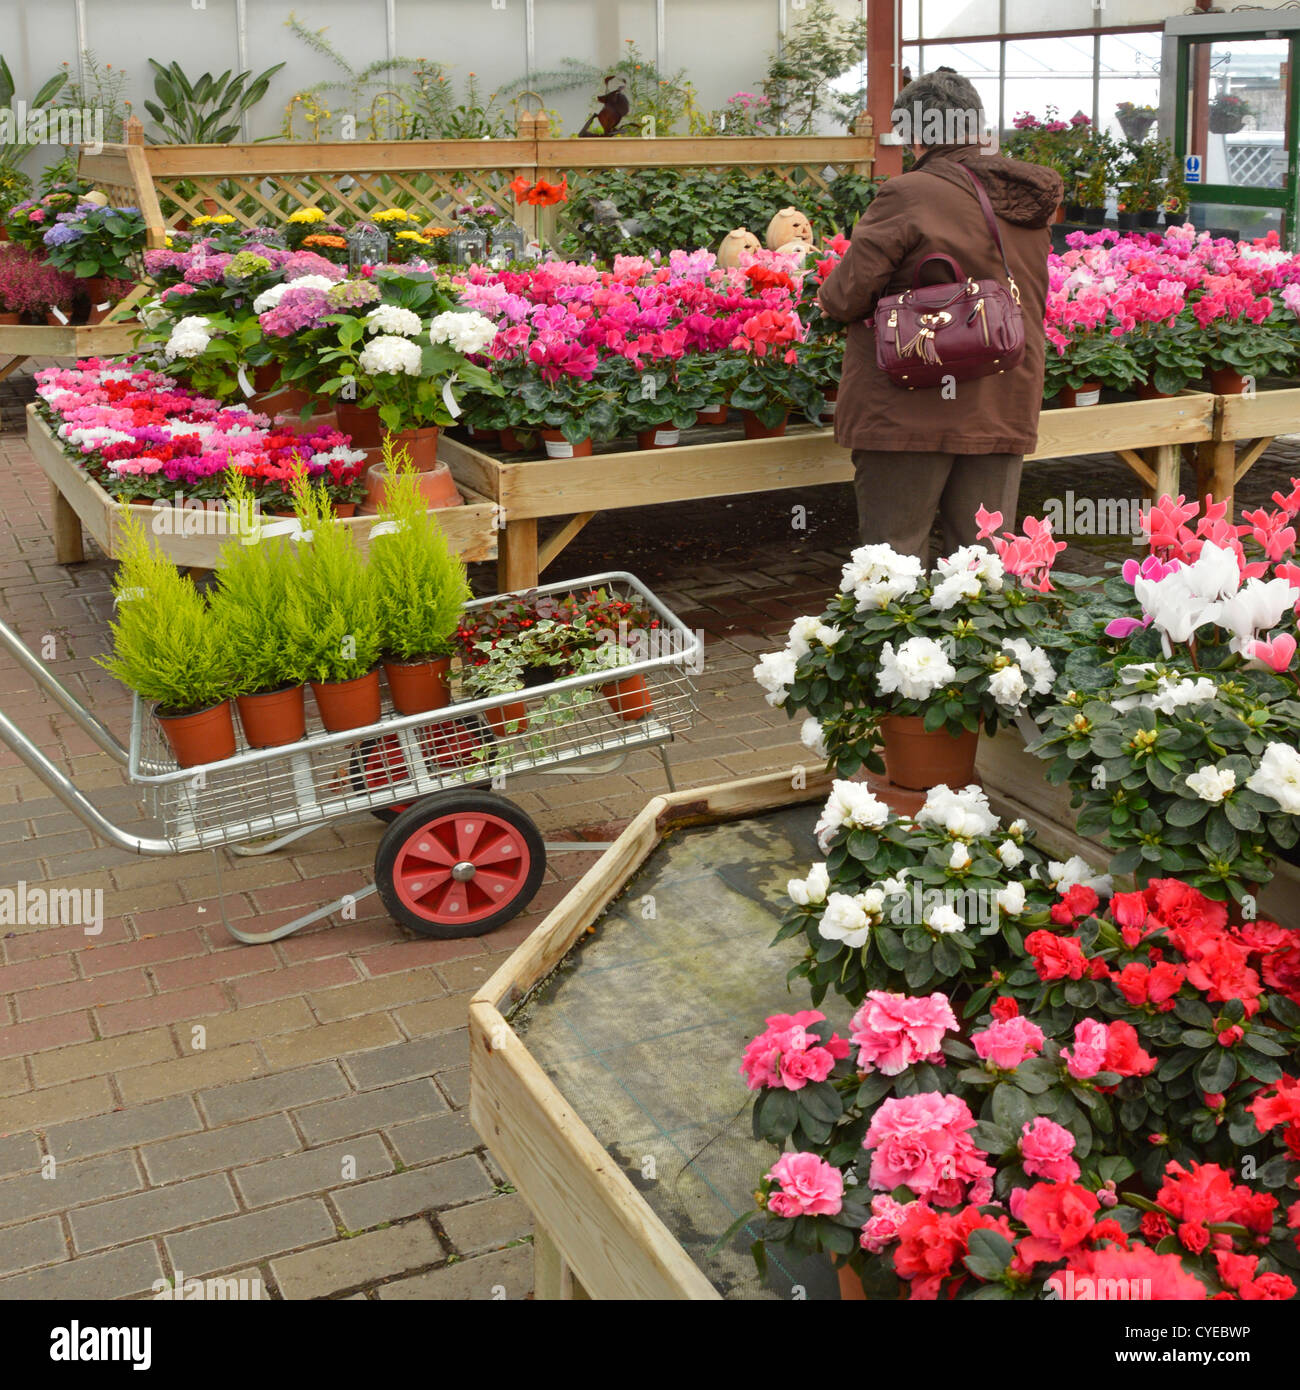 Woman shopping for plants at garden center - Stock Image